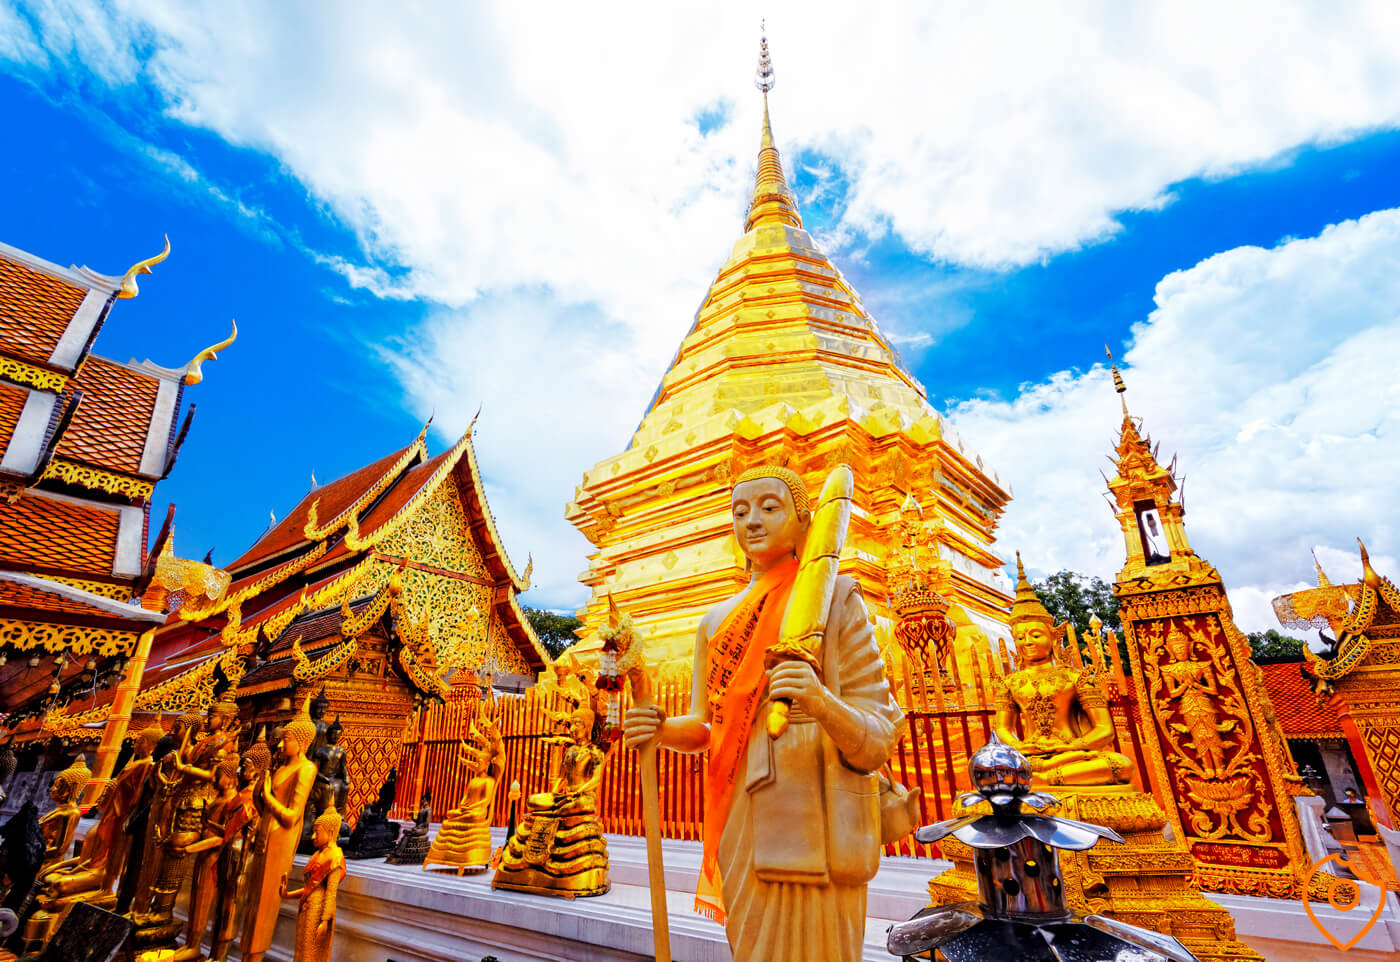 Thailand Itinerary For Kids - Chiang Mai Temple Jop